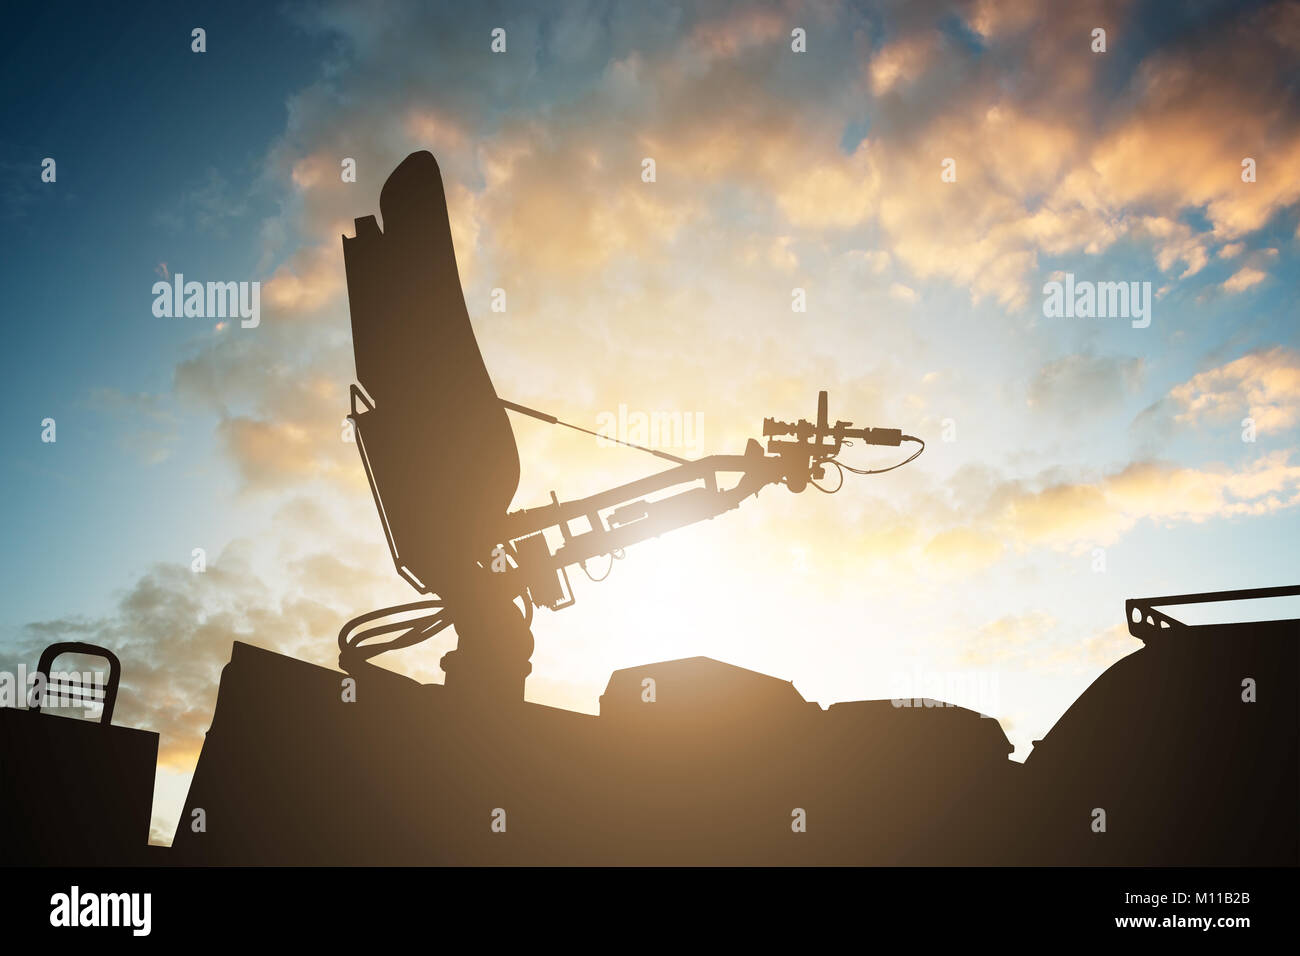 795c0fd571 Silhouette Of Satellite Dish Antenna On Top Of TV Van Against Sky - Stock  Image